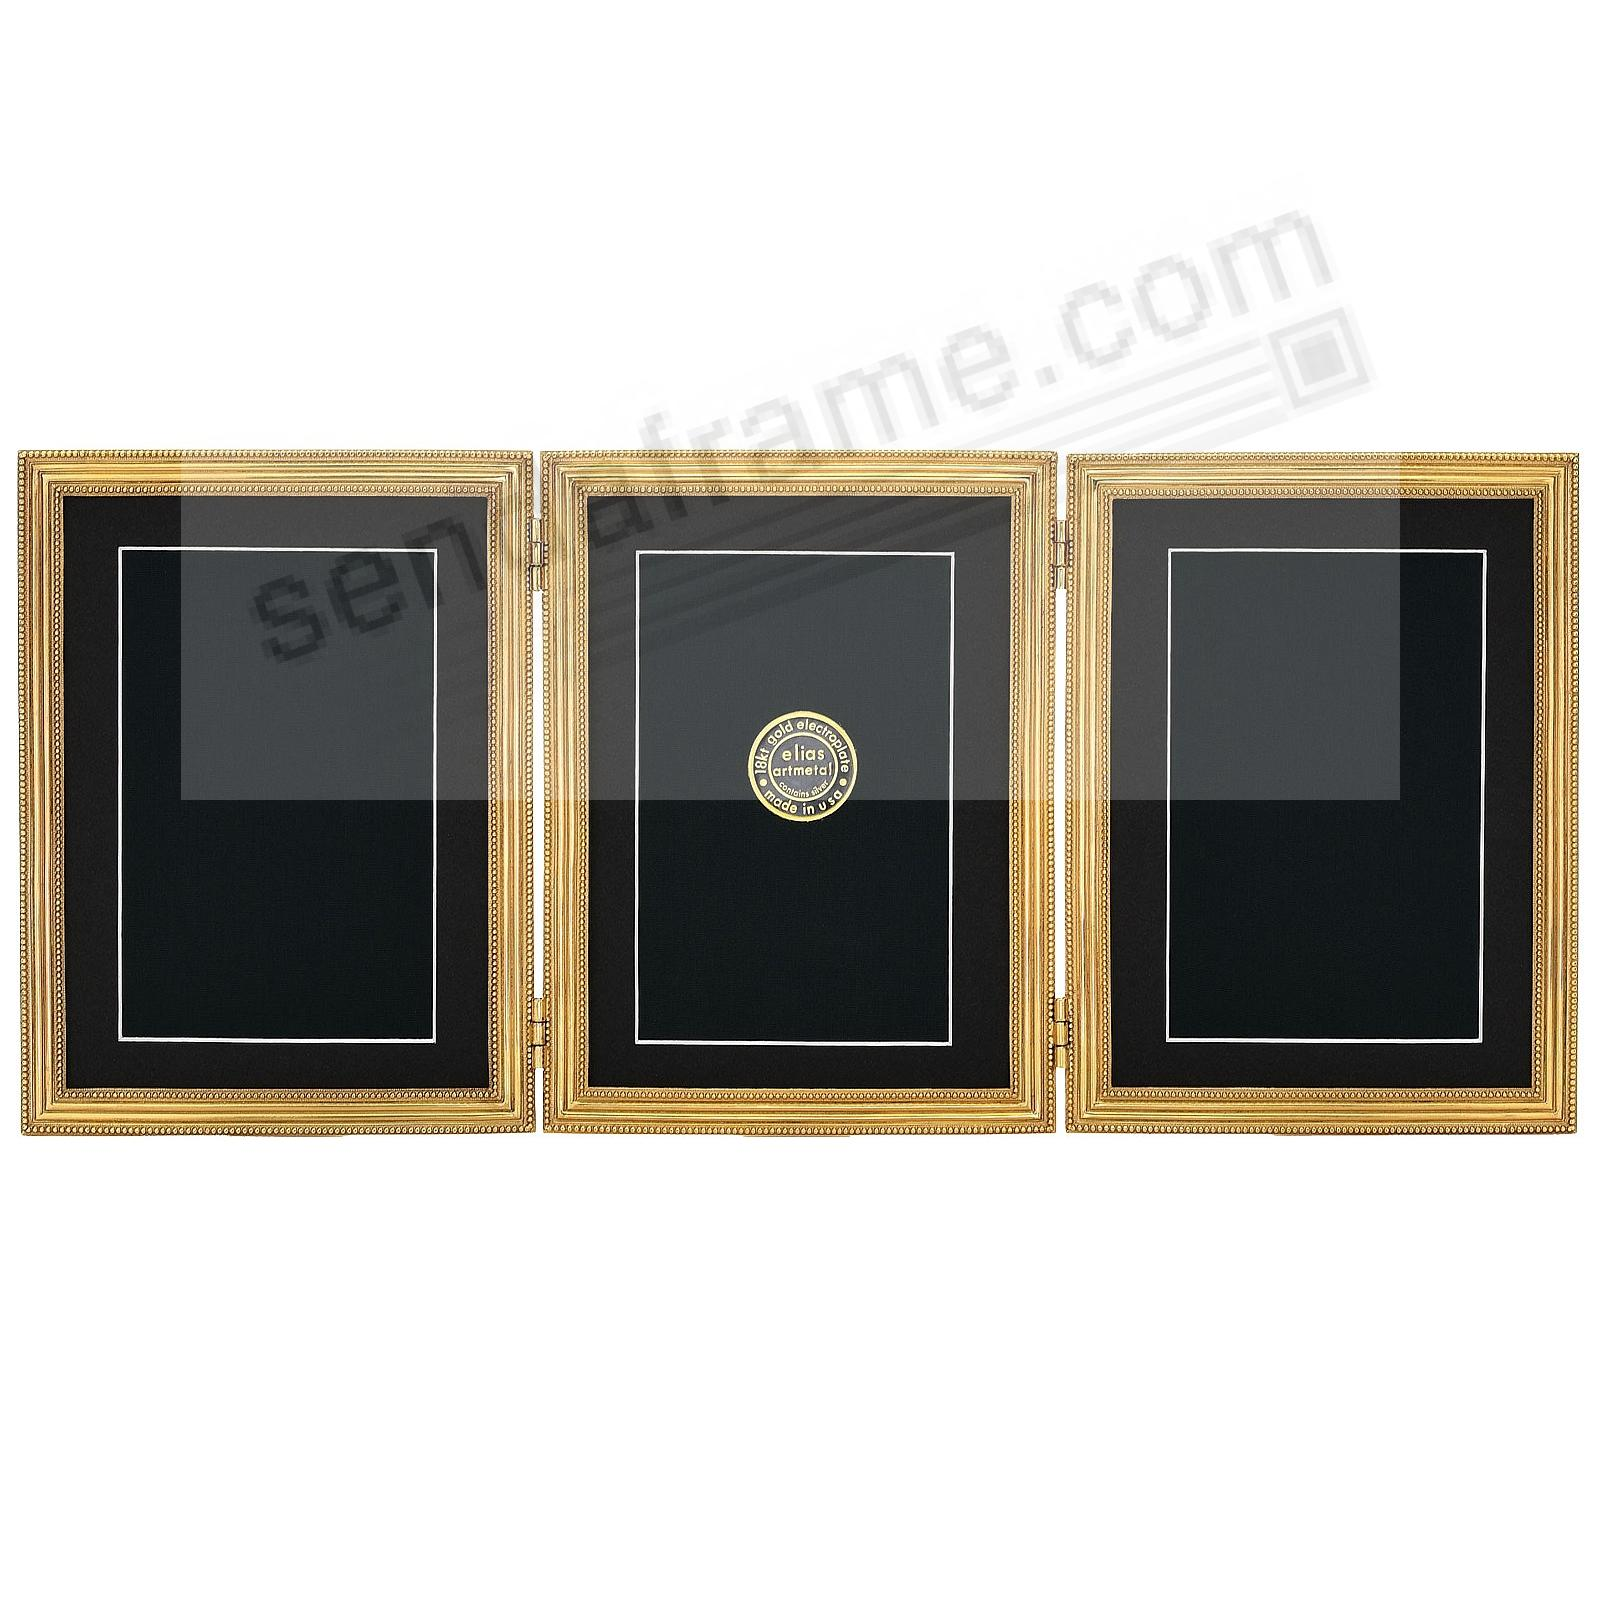 CLASSICO TRIPLE Hinged 5x7/4x6 frame in fine 18kt gold vermeil by Elias Artmetal®